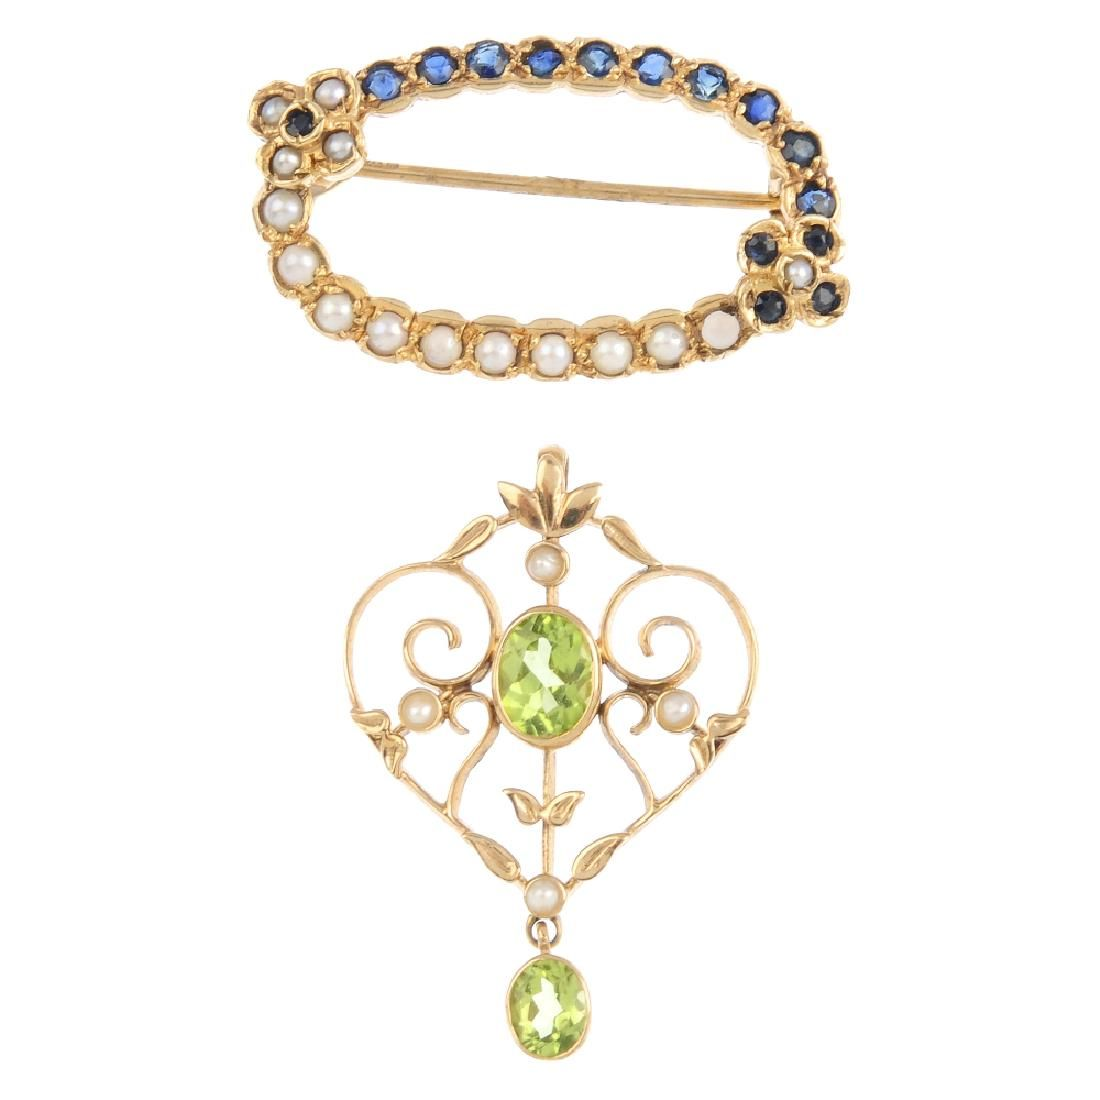 A gem-set brooch and pendant. The brooch designed as an